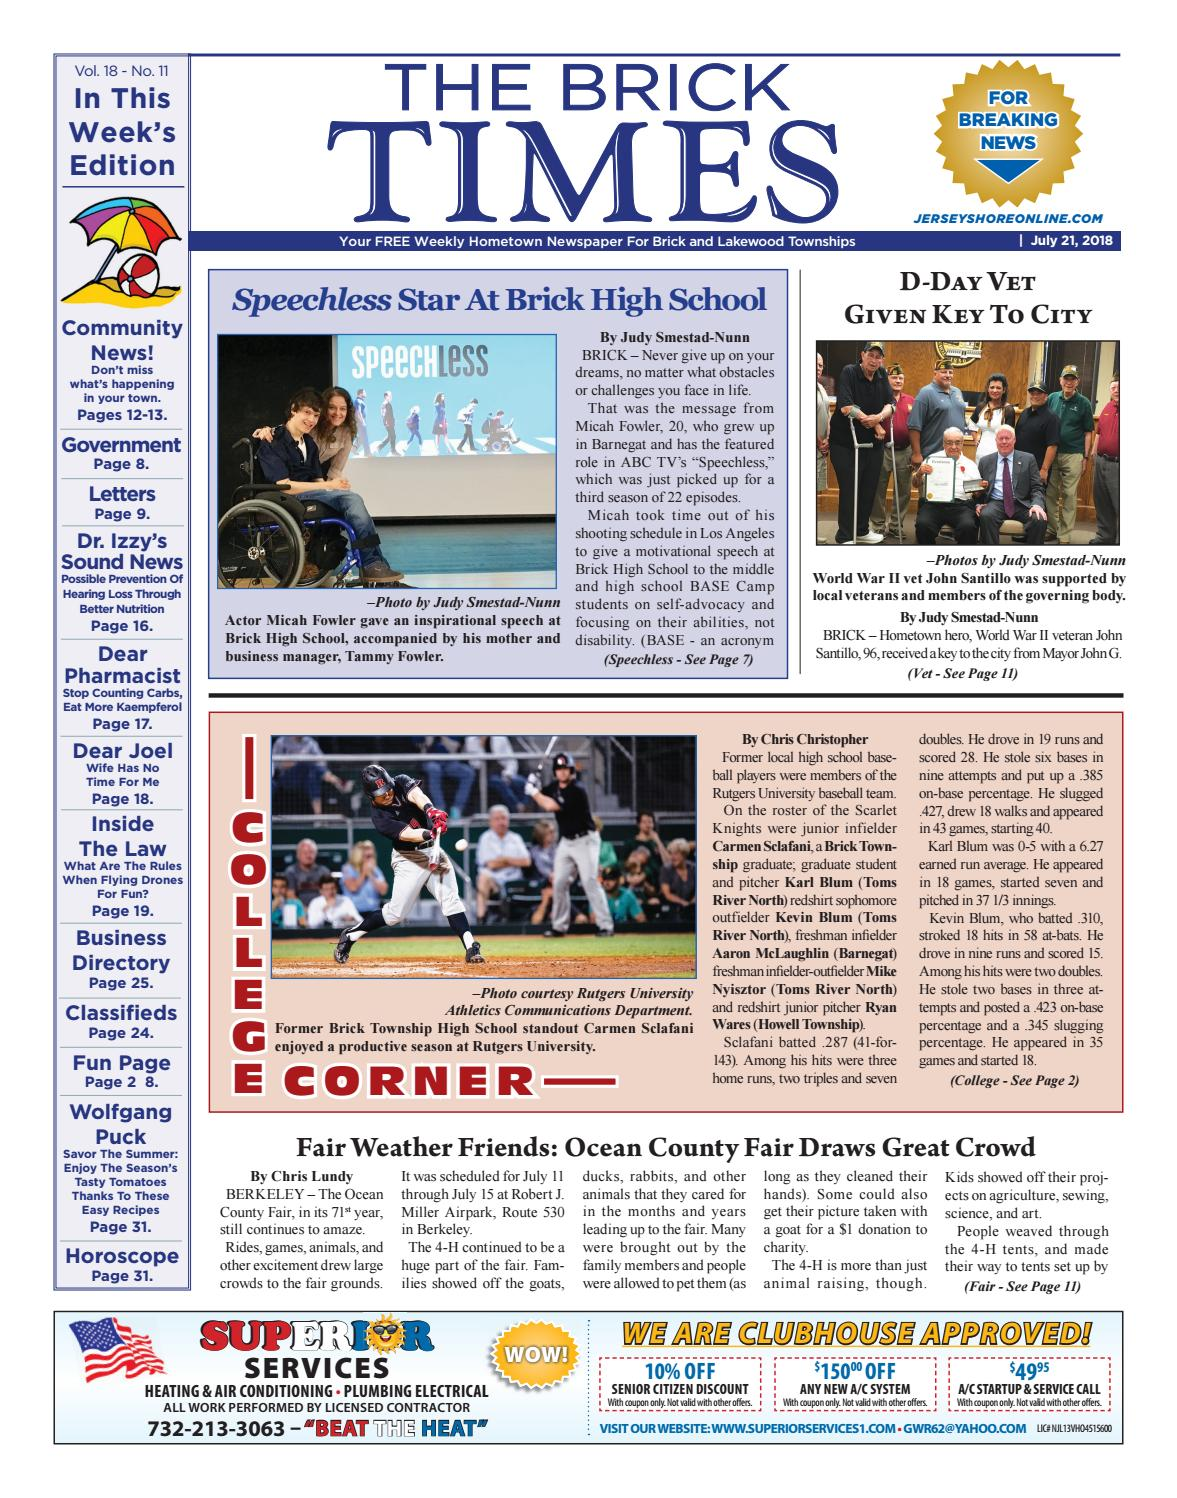 2018-07-21 - The Brick Times by Micromedia Publications